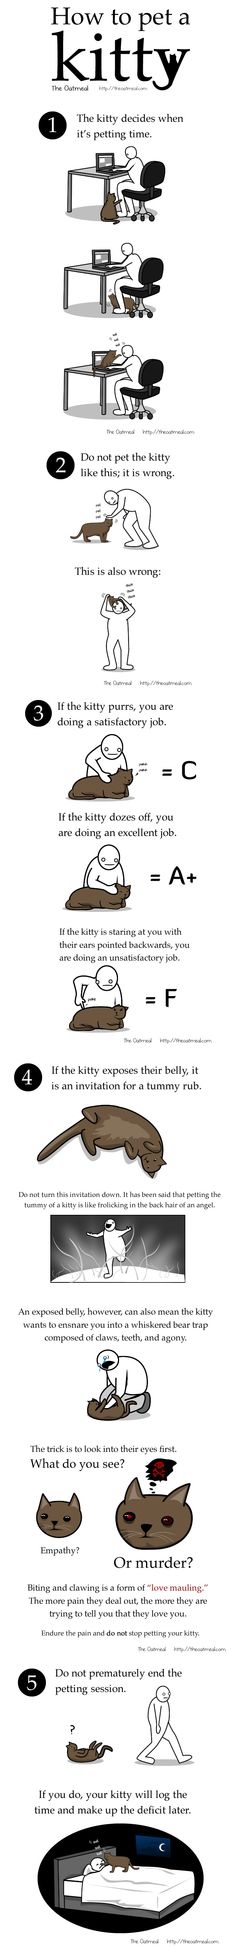 How to pet a kitty.